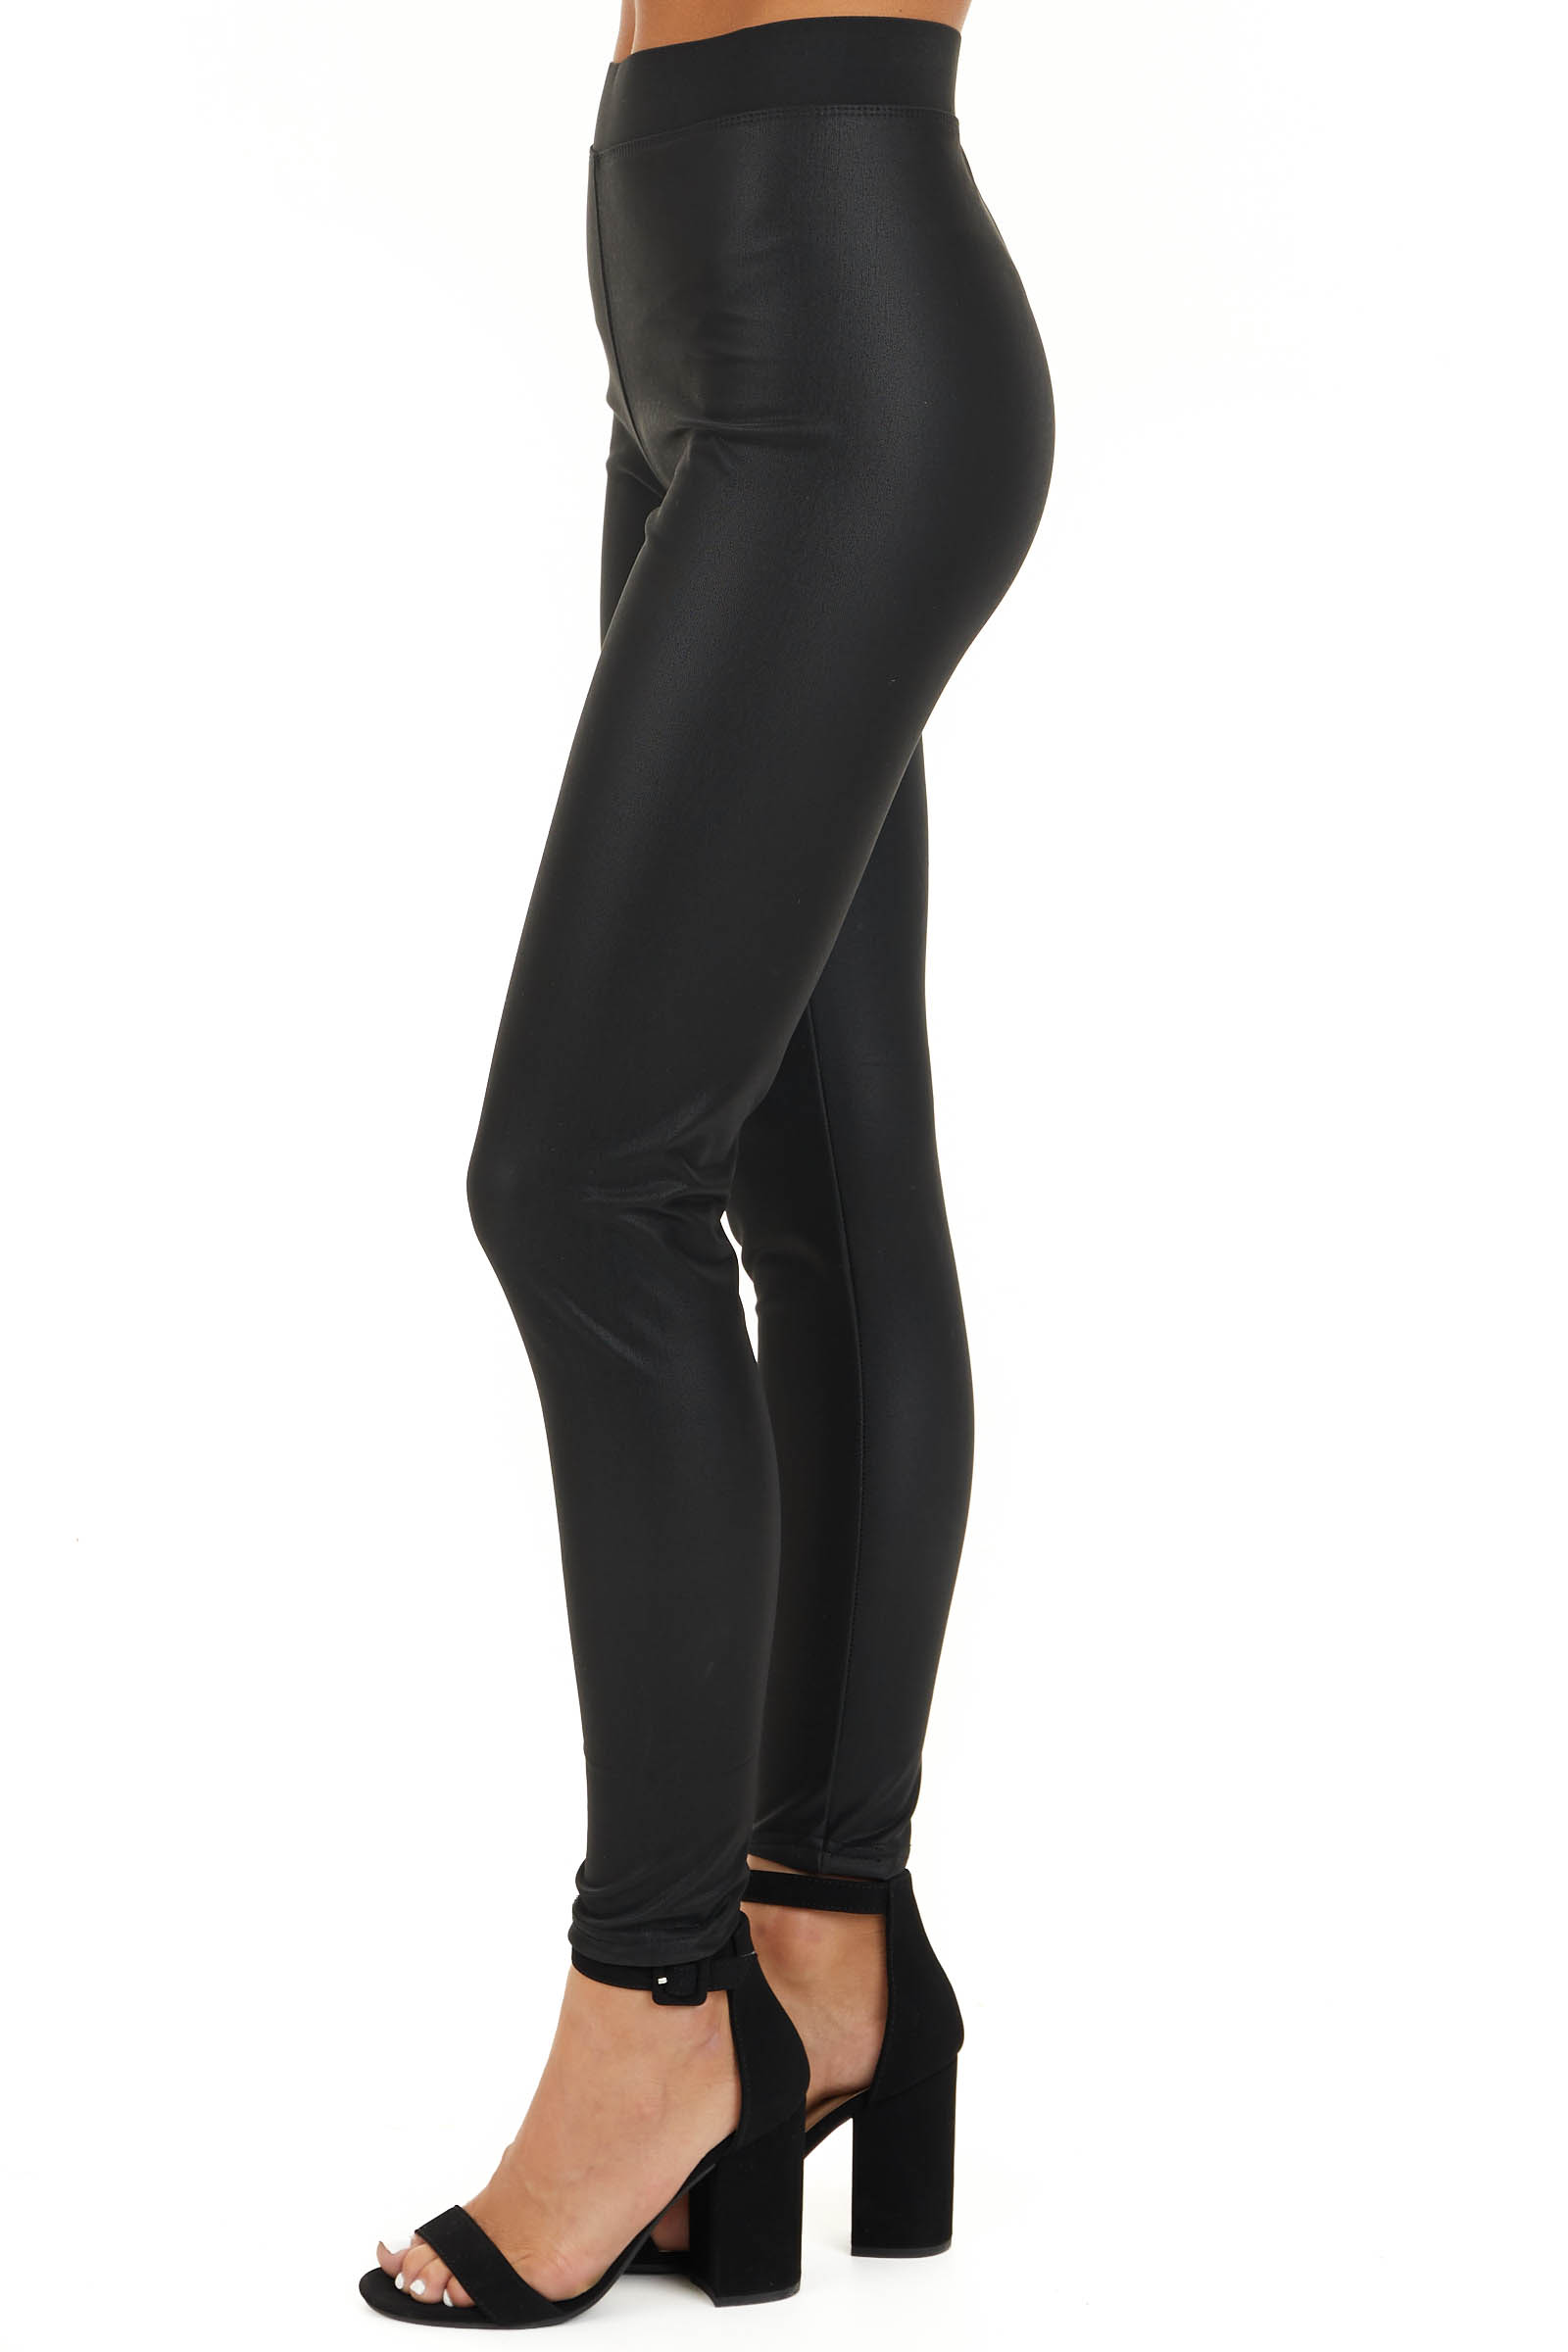 Black Faux Leather Fleece Lined Leggings with Elastic Waist side view